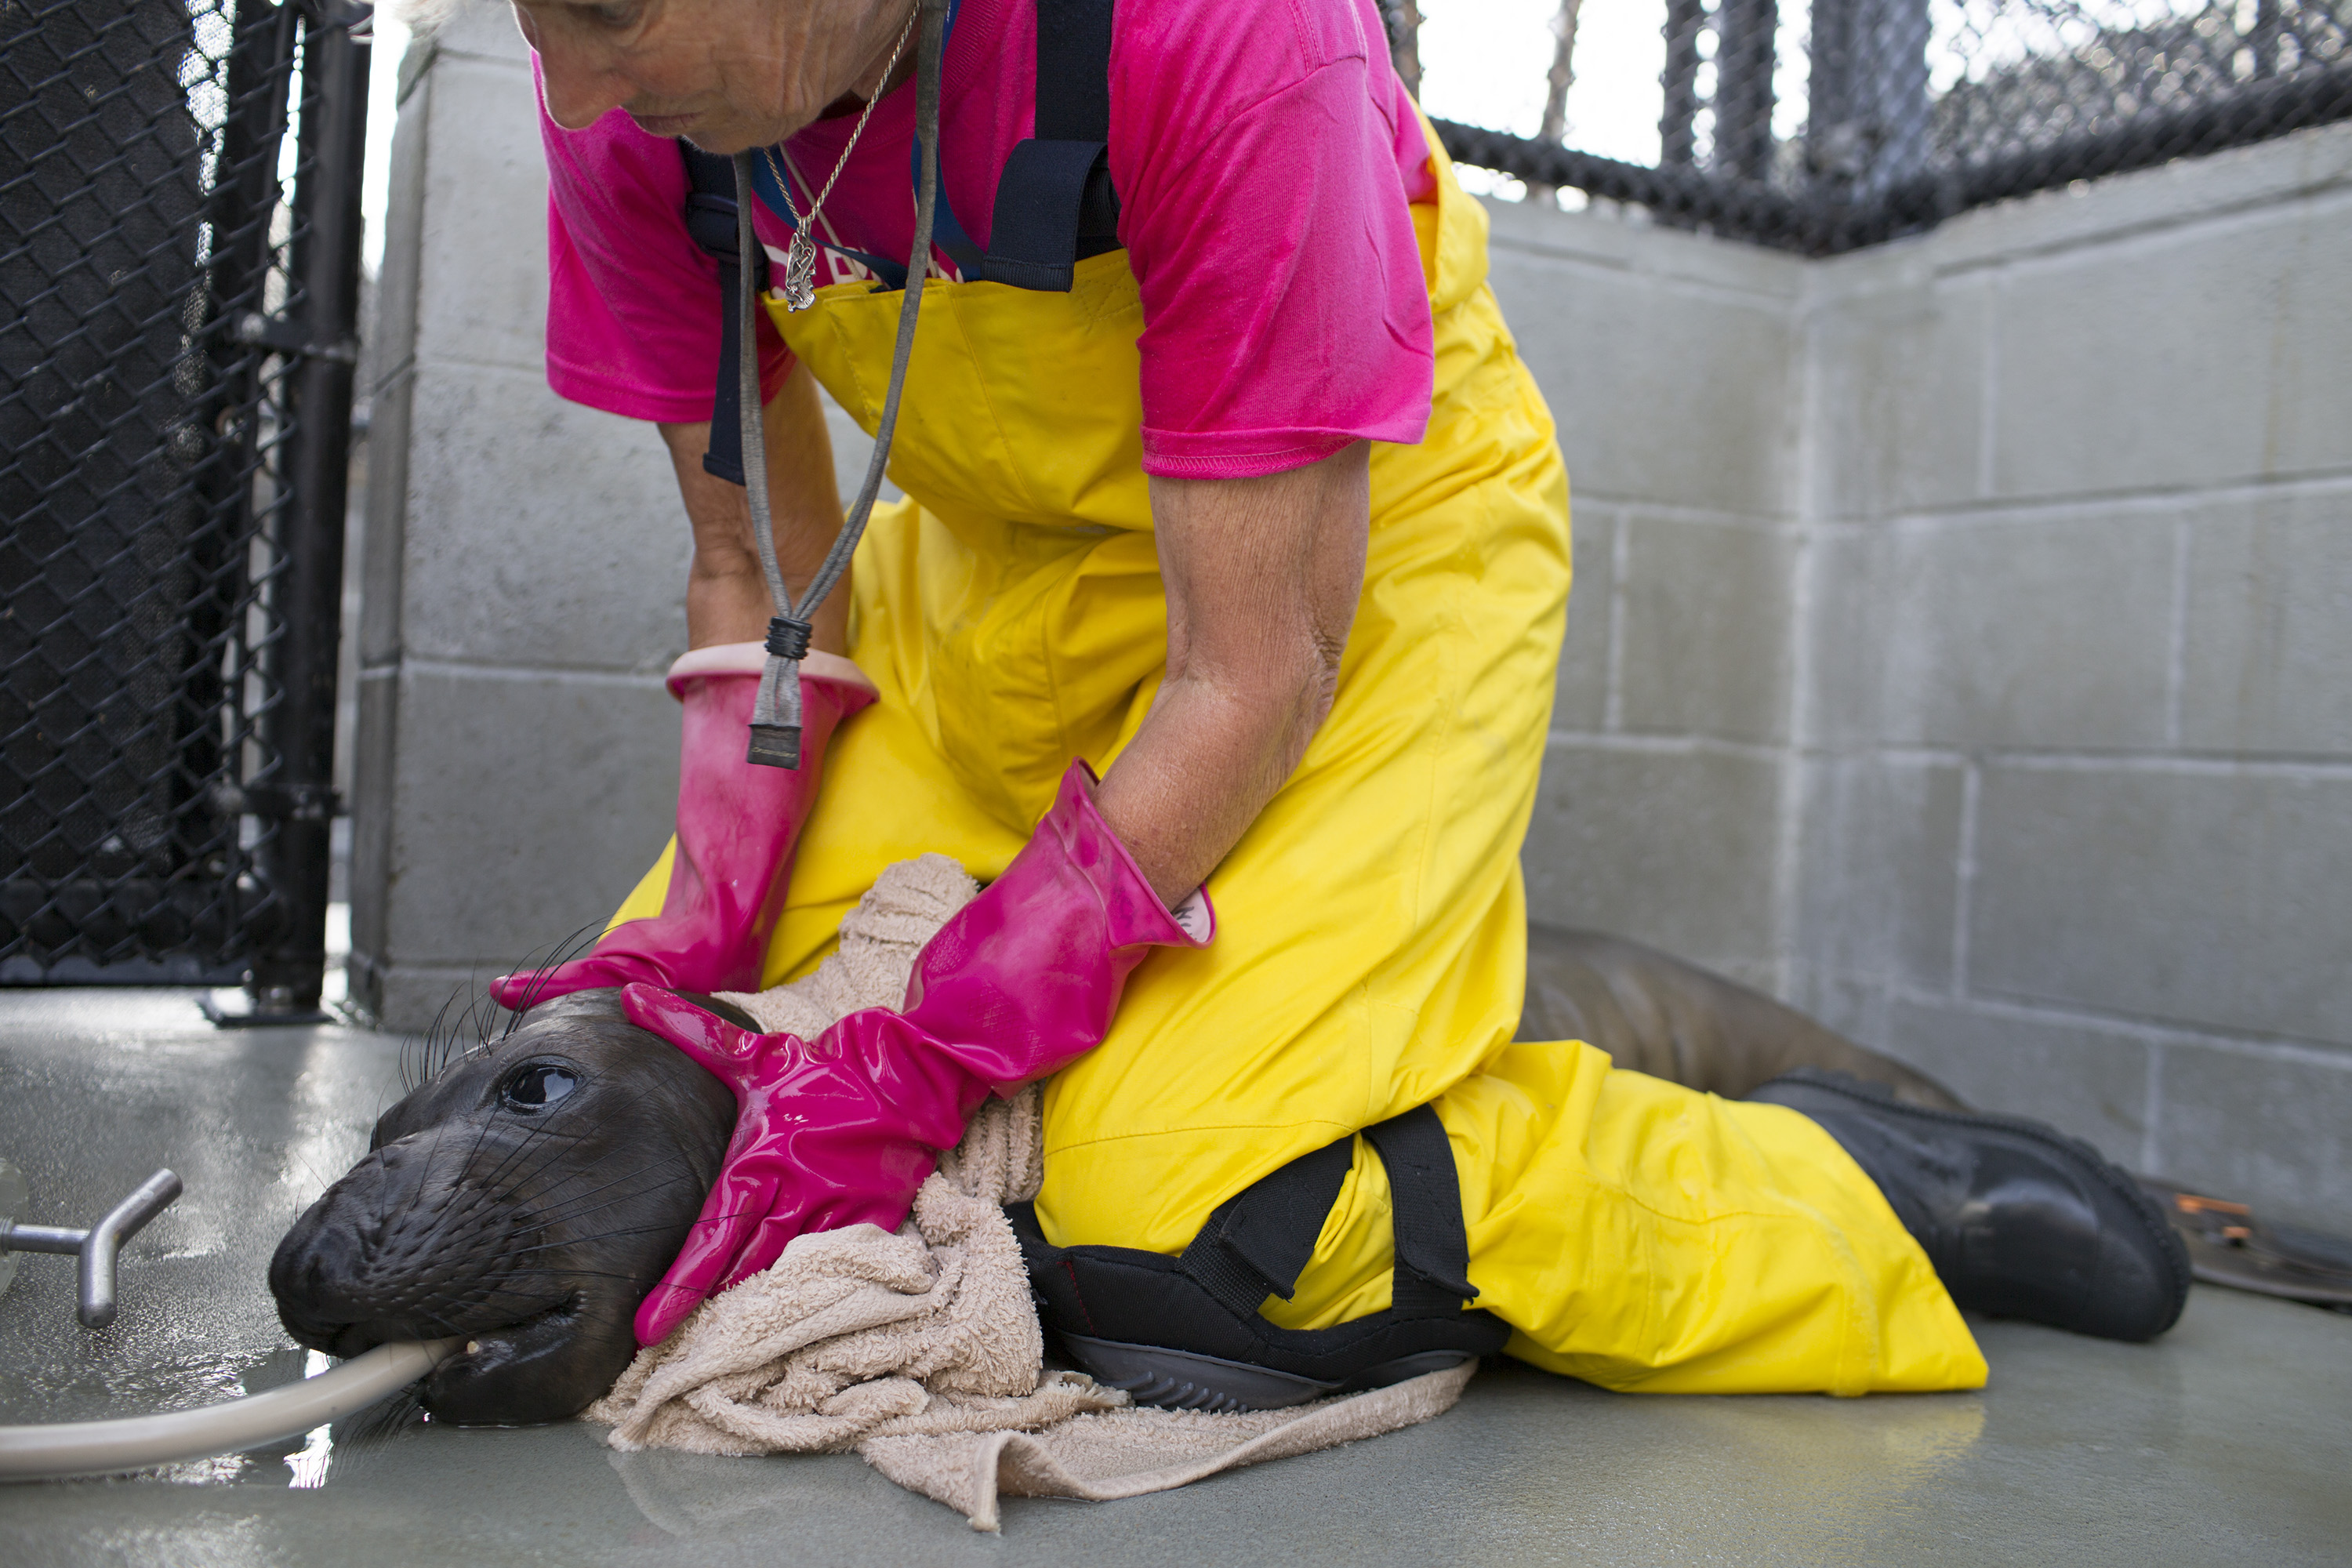 A volunteer restrains an elephant seal pup while the animal is fed through a tube at the Marine Mammal Center in Marin County, Calif. on May 9, 2014.